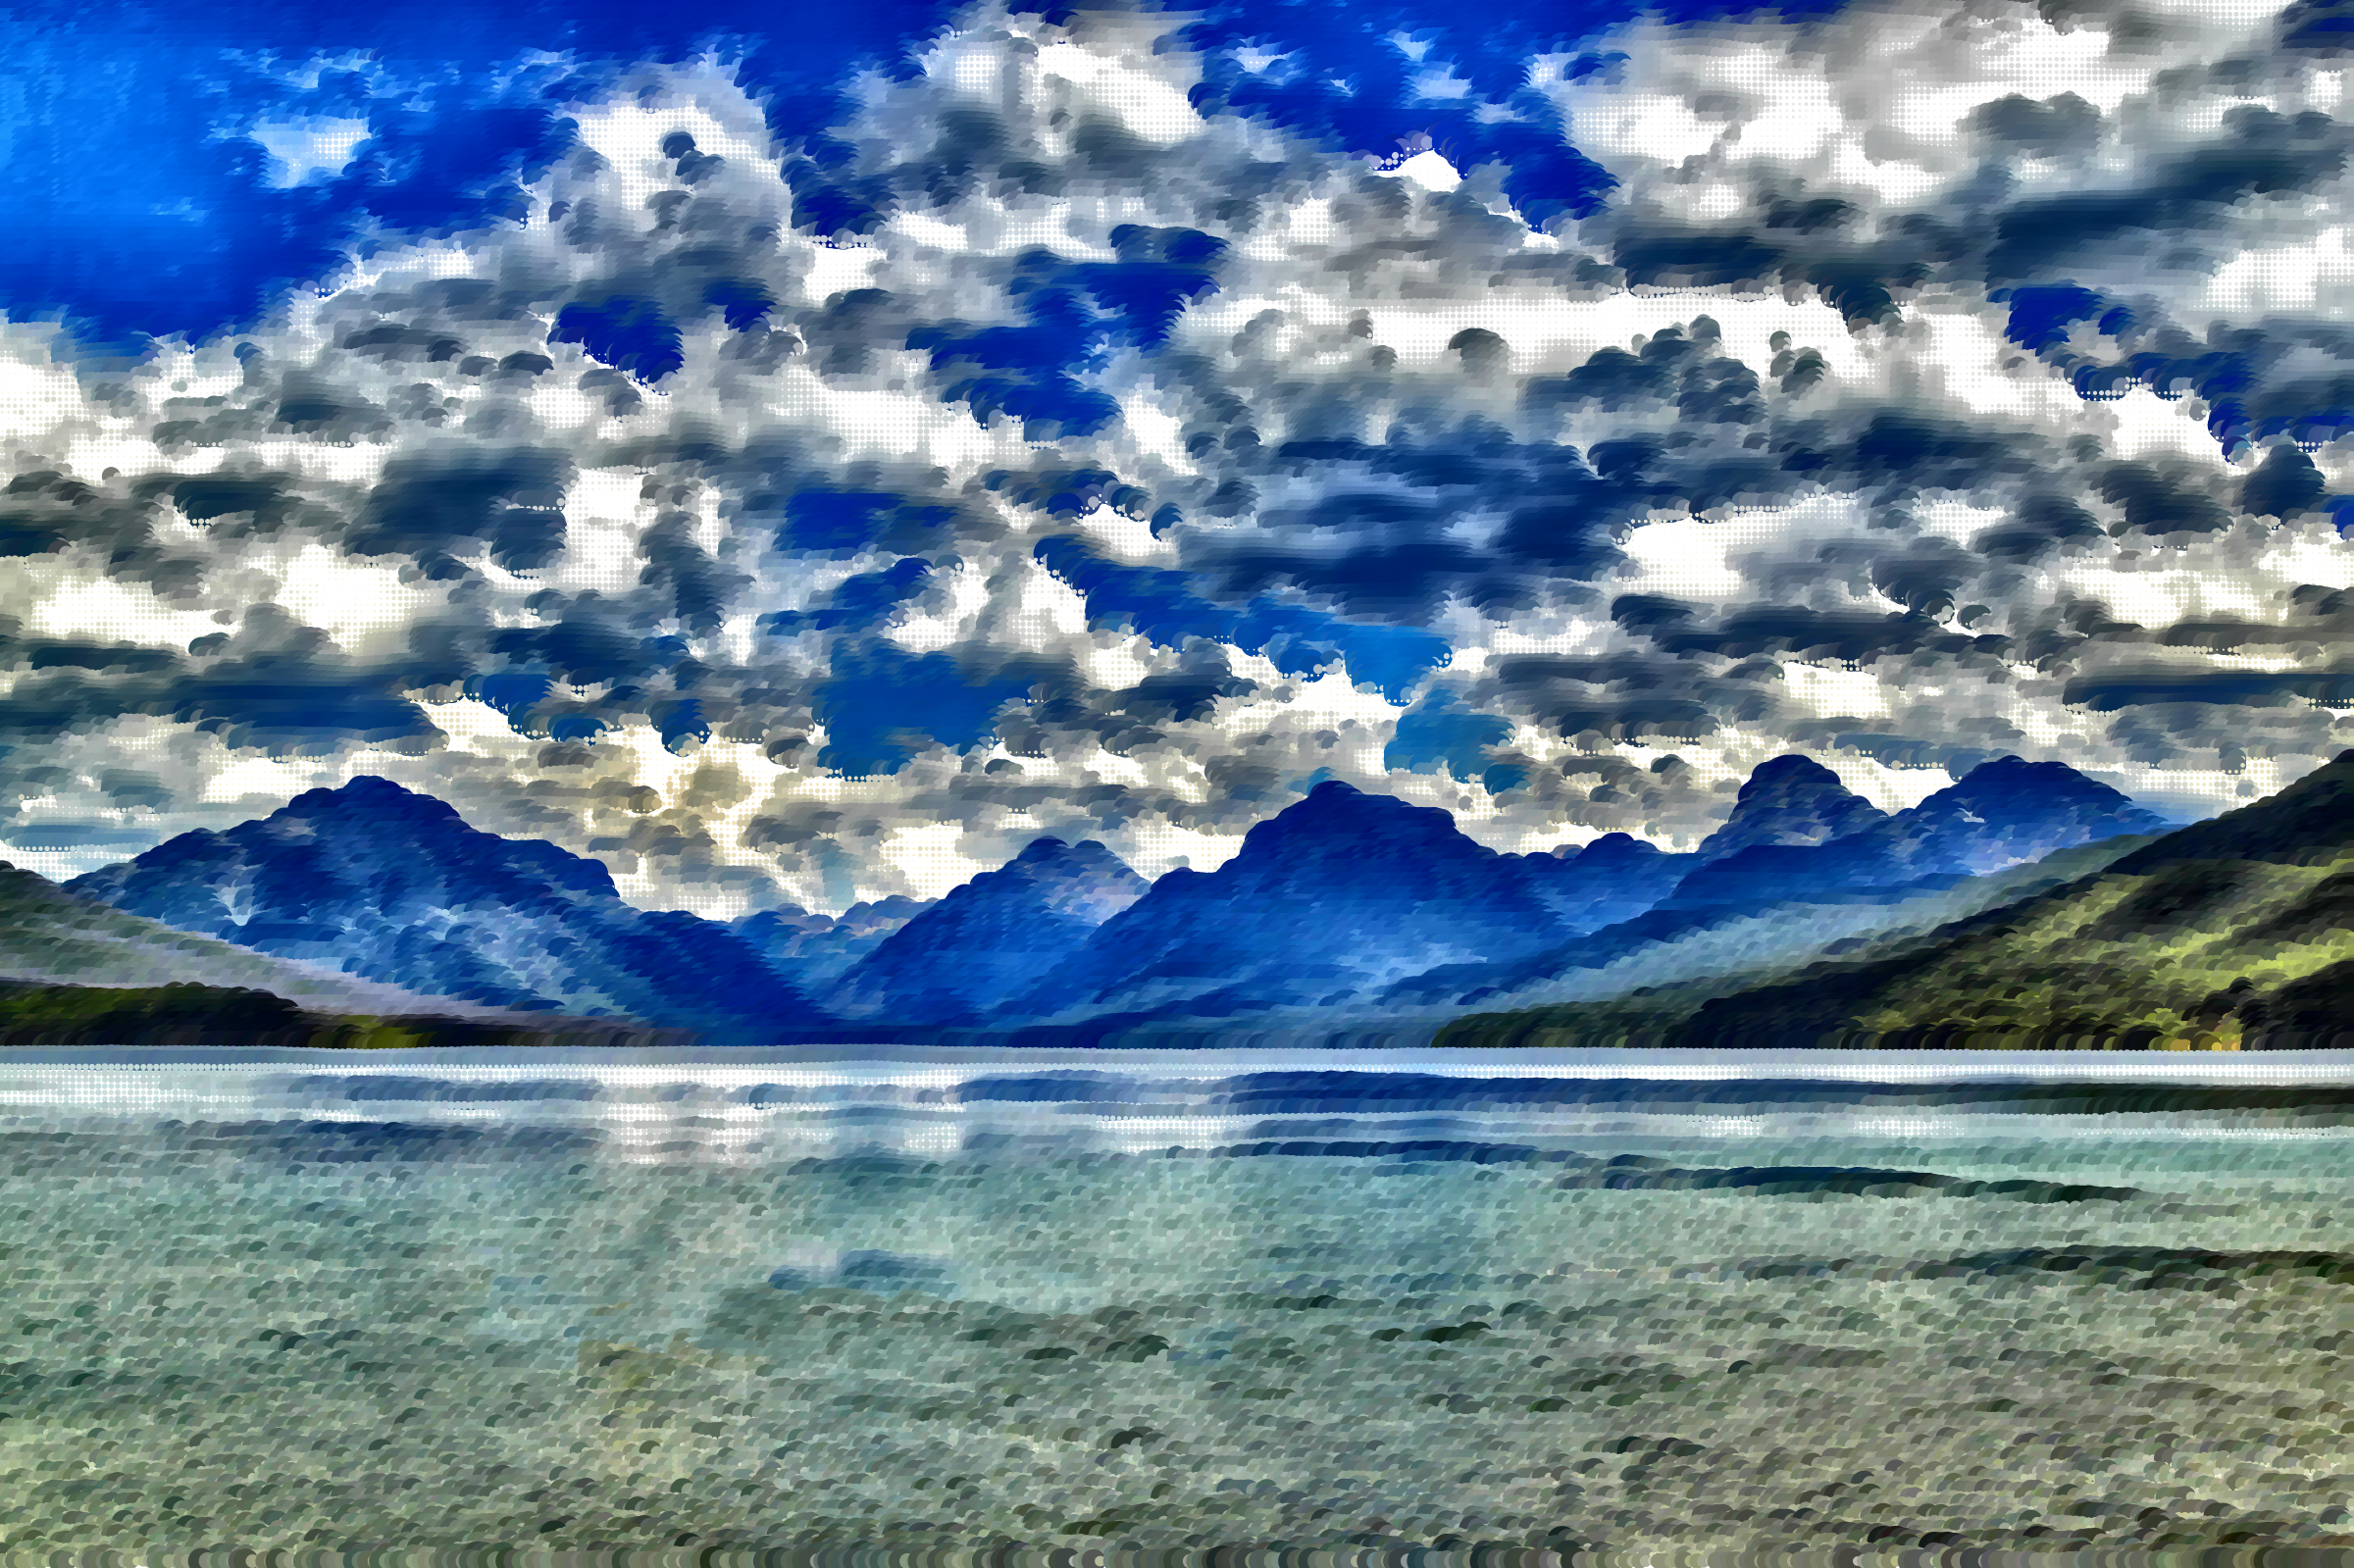 Surreal Lake McDonald Montana by GDJ